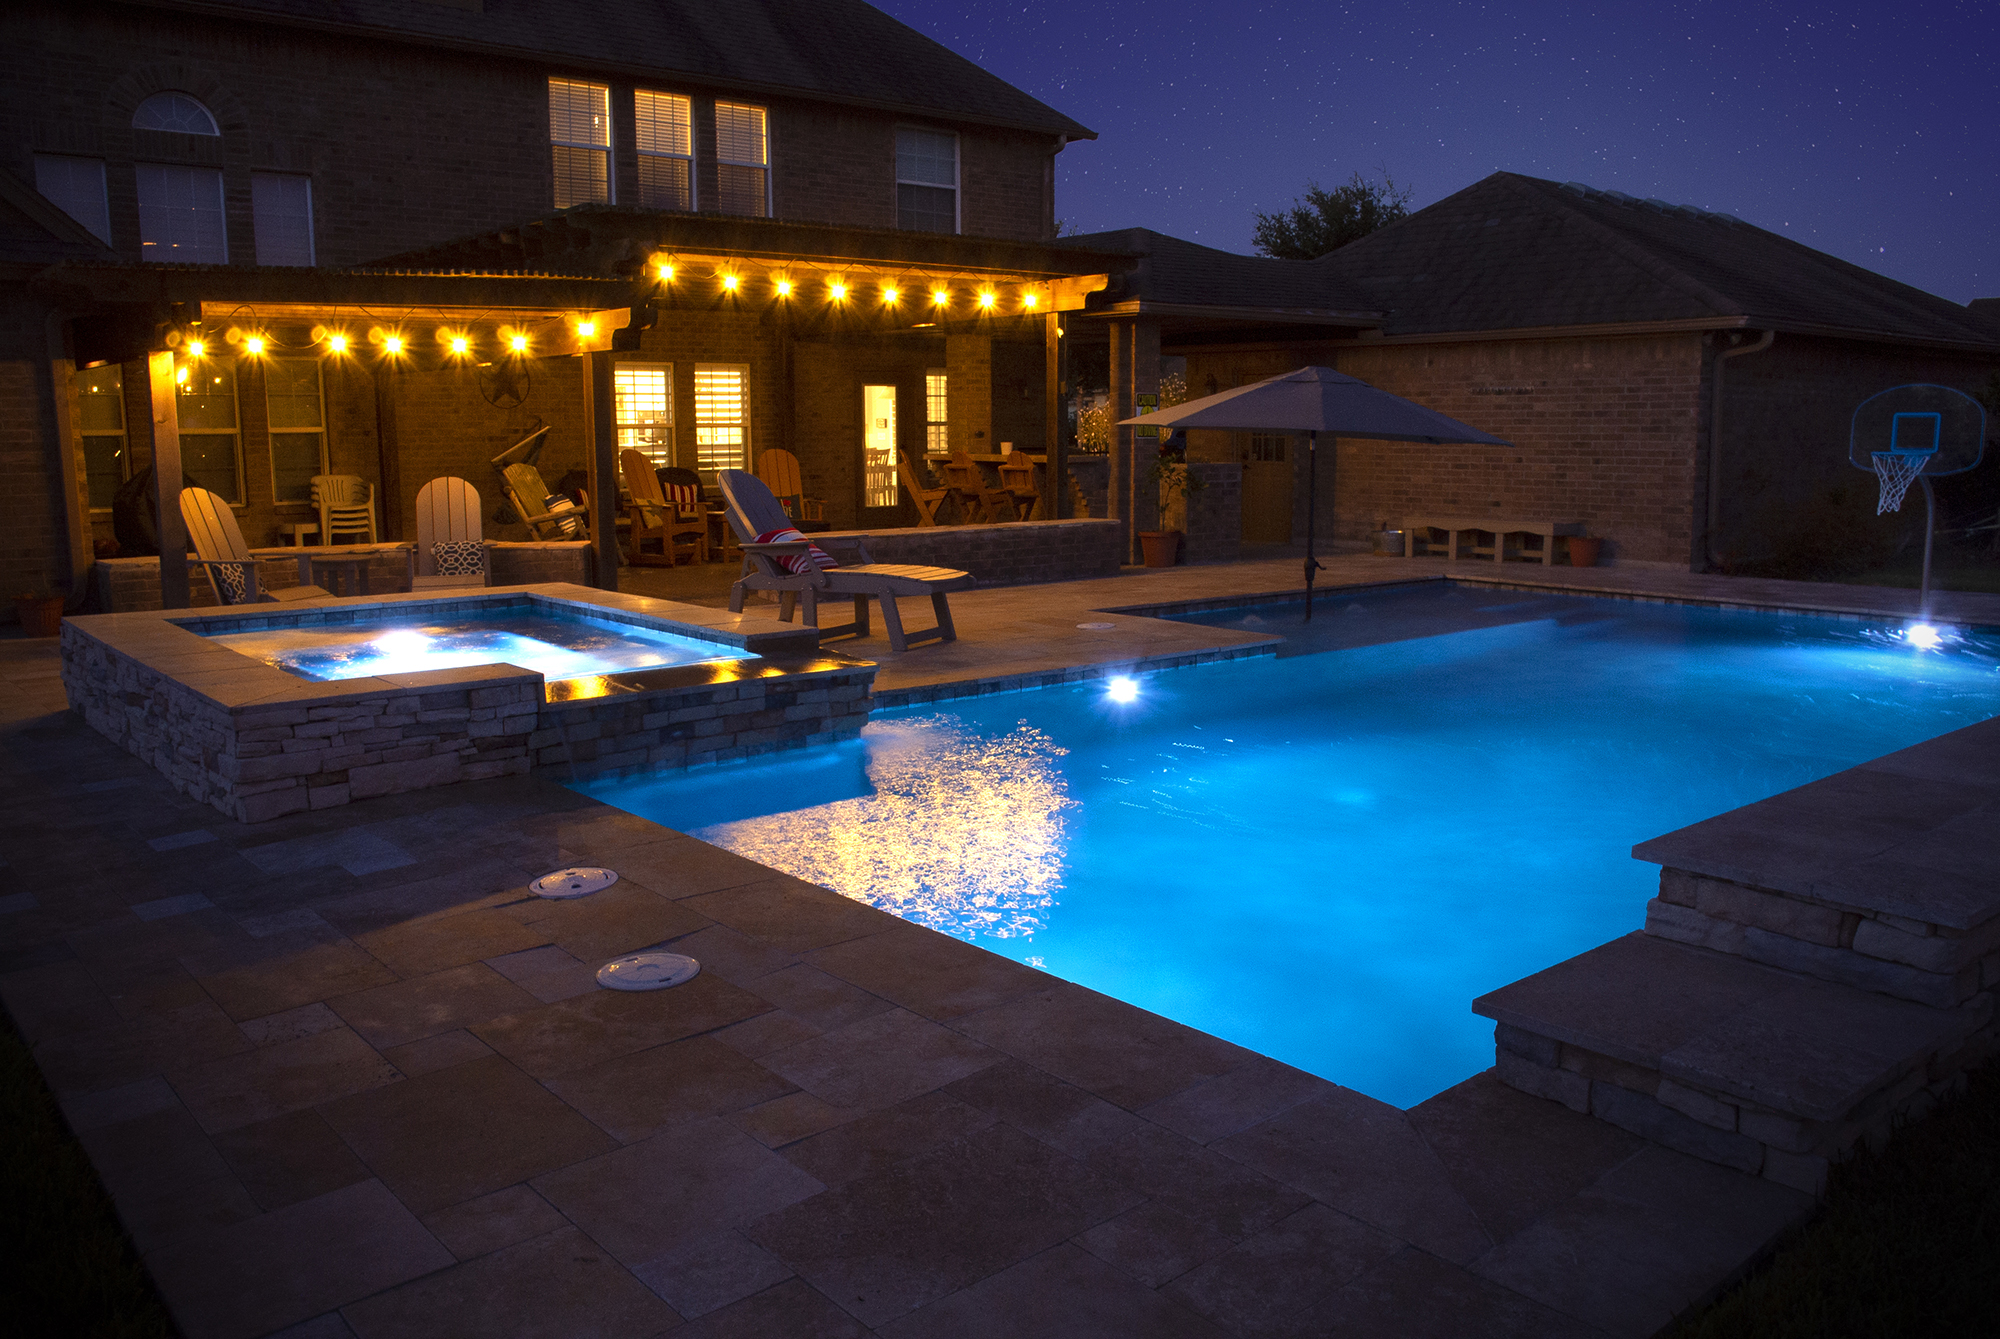 Take Action - Ready to take the next step? Design the pool of your dreams now.